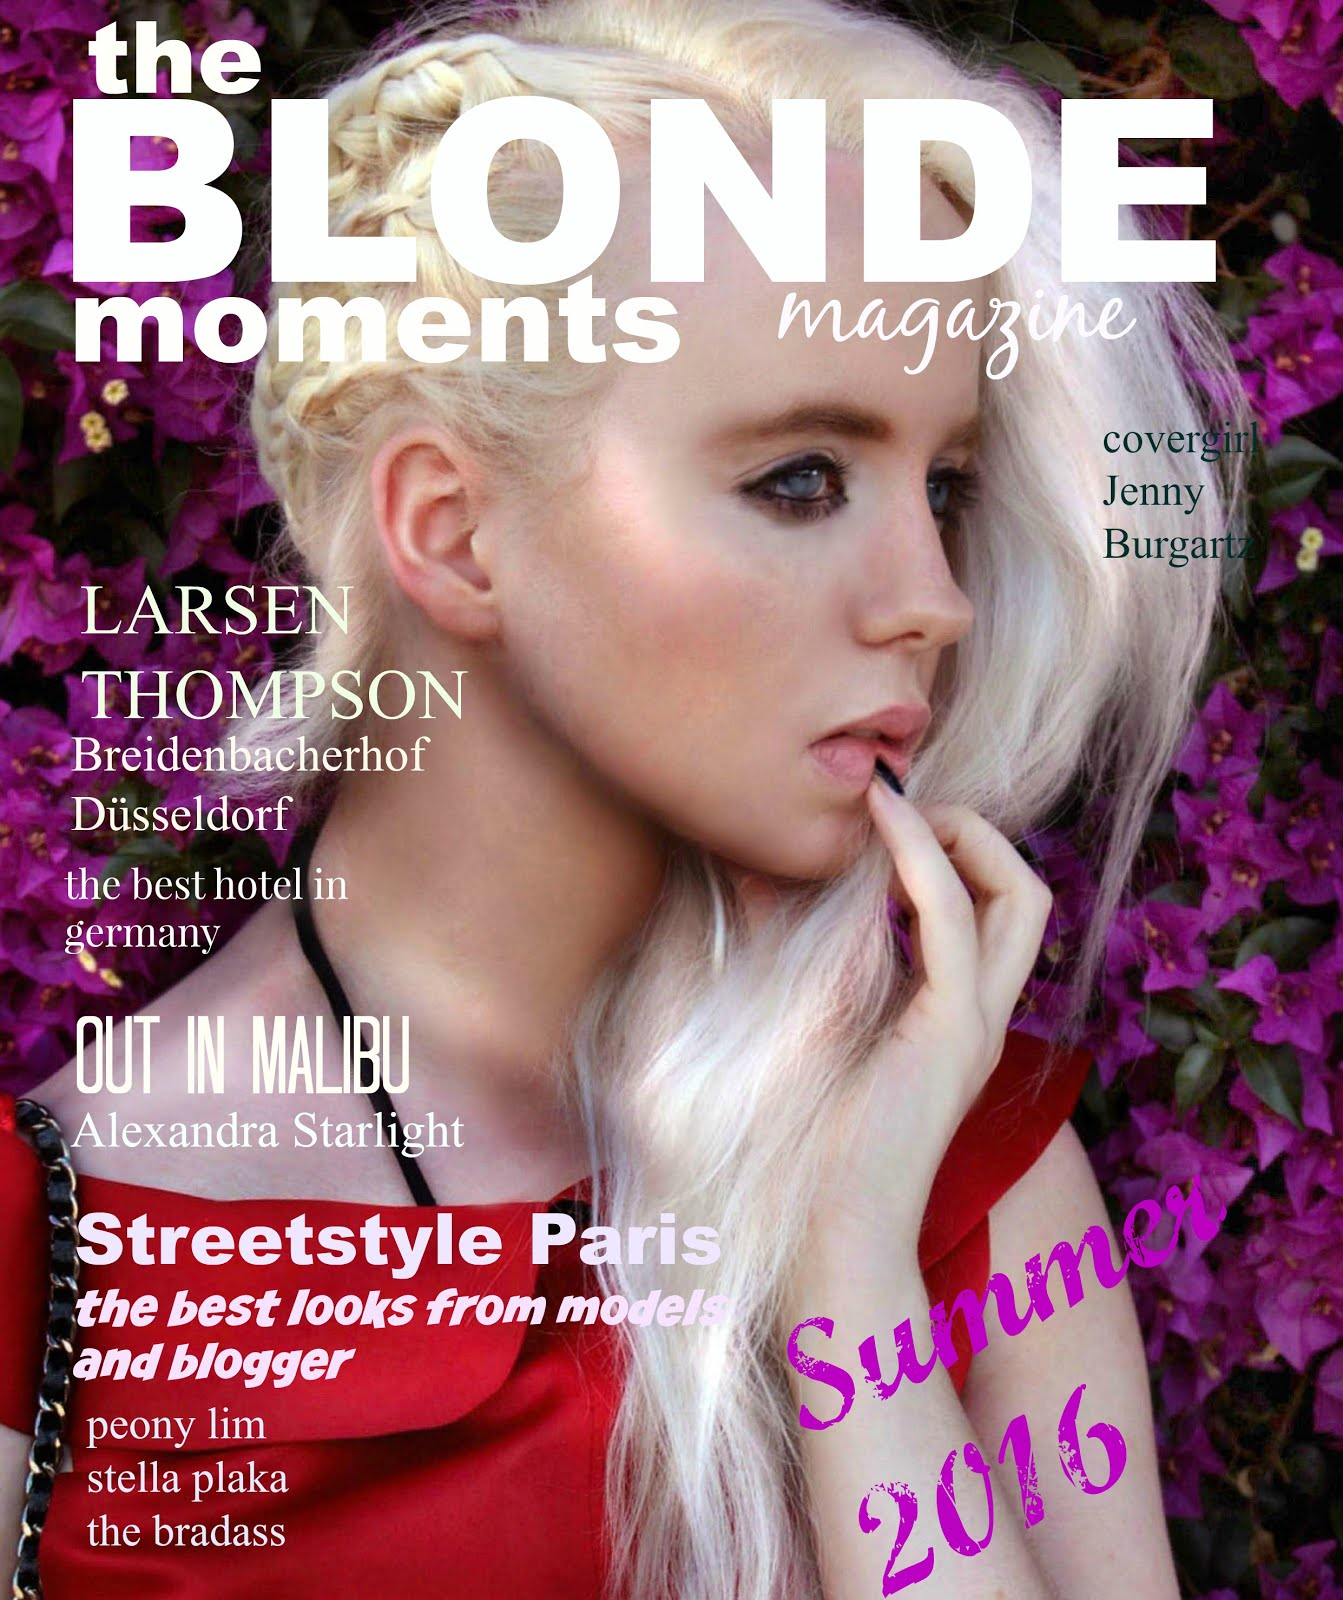 THE BLONDE MOMENTS MAGAZINE  CLICK ON THE PIC